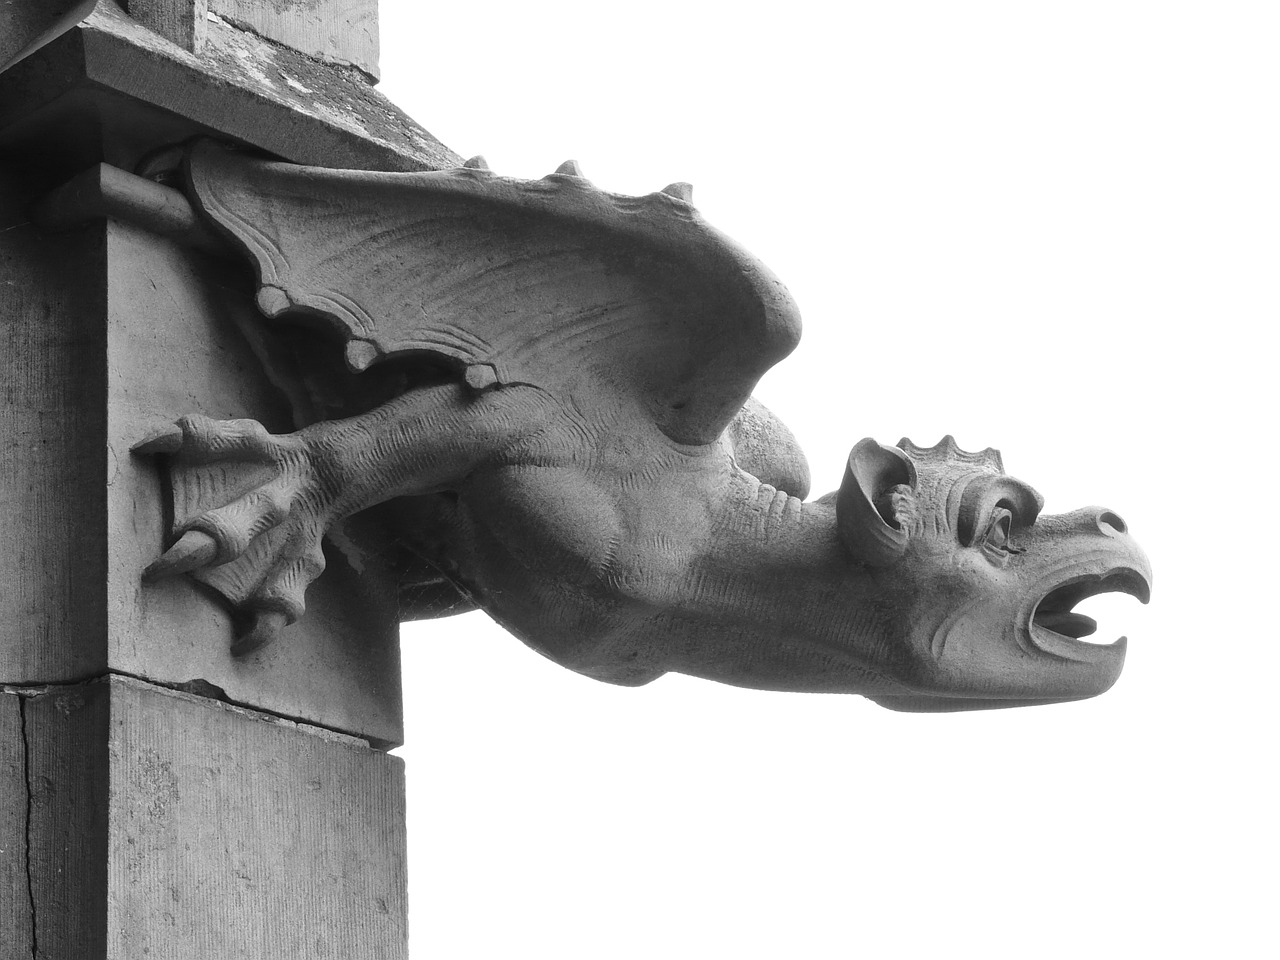 gargoyle,figure,dragon,claw,ulm cathedral,münster,building,architecture,mythical creatures,ulm,drainage,black and white,creepy,dangerous,free pictures, free photos, free images, royalty free, free illustrations, public domain